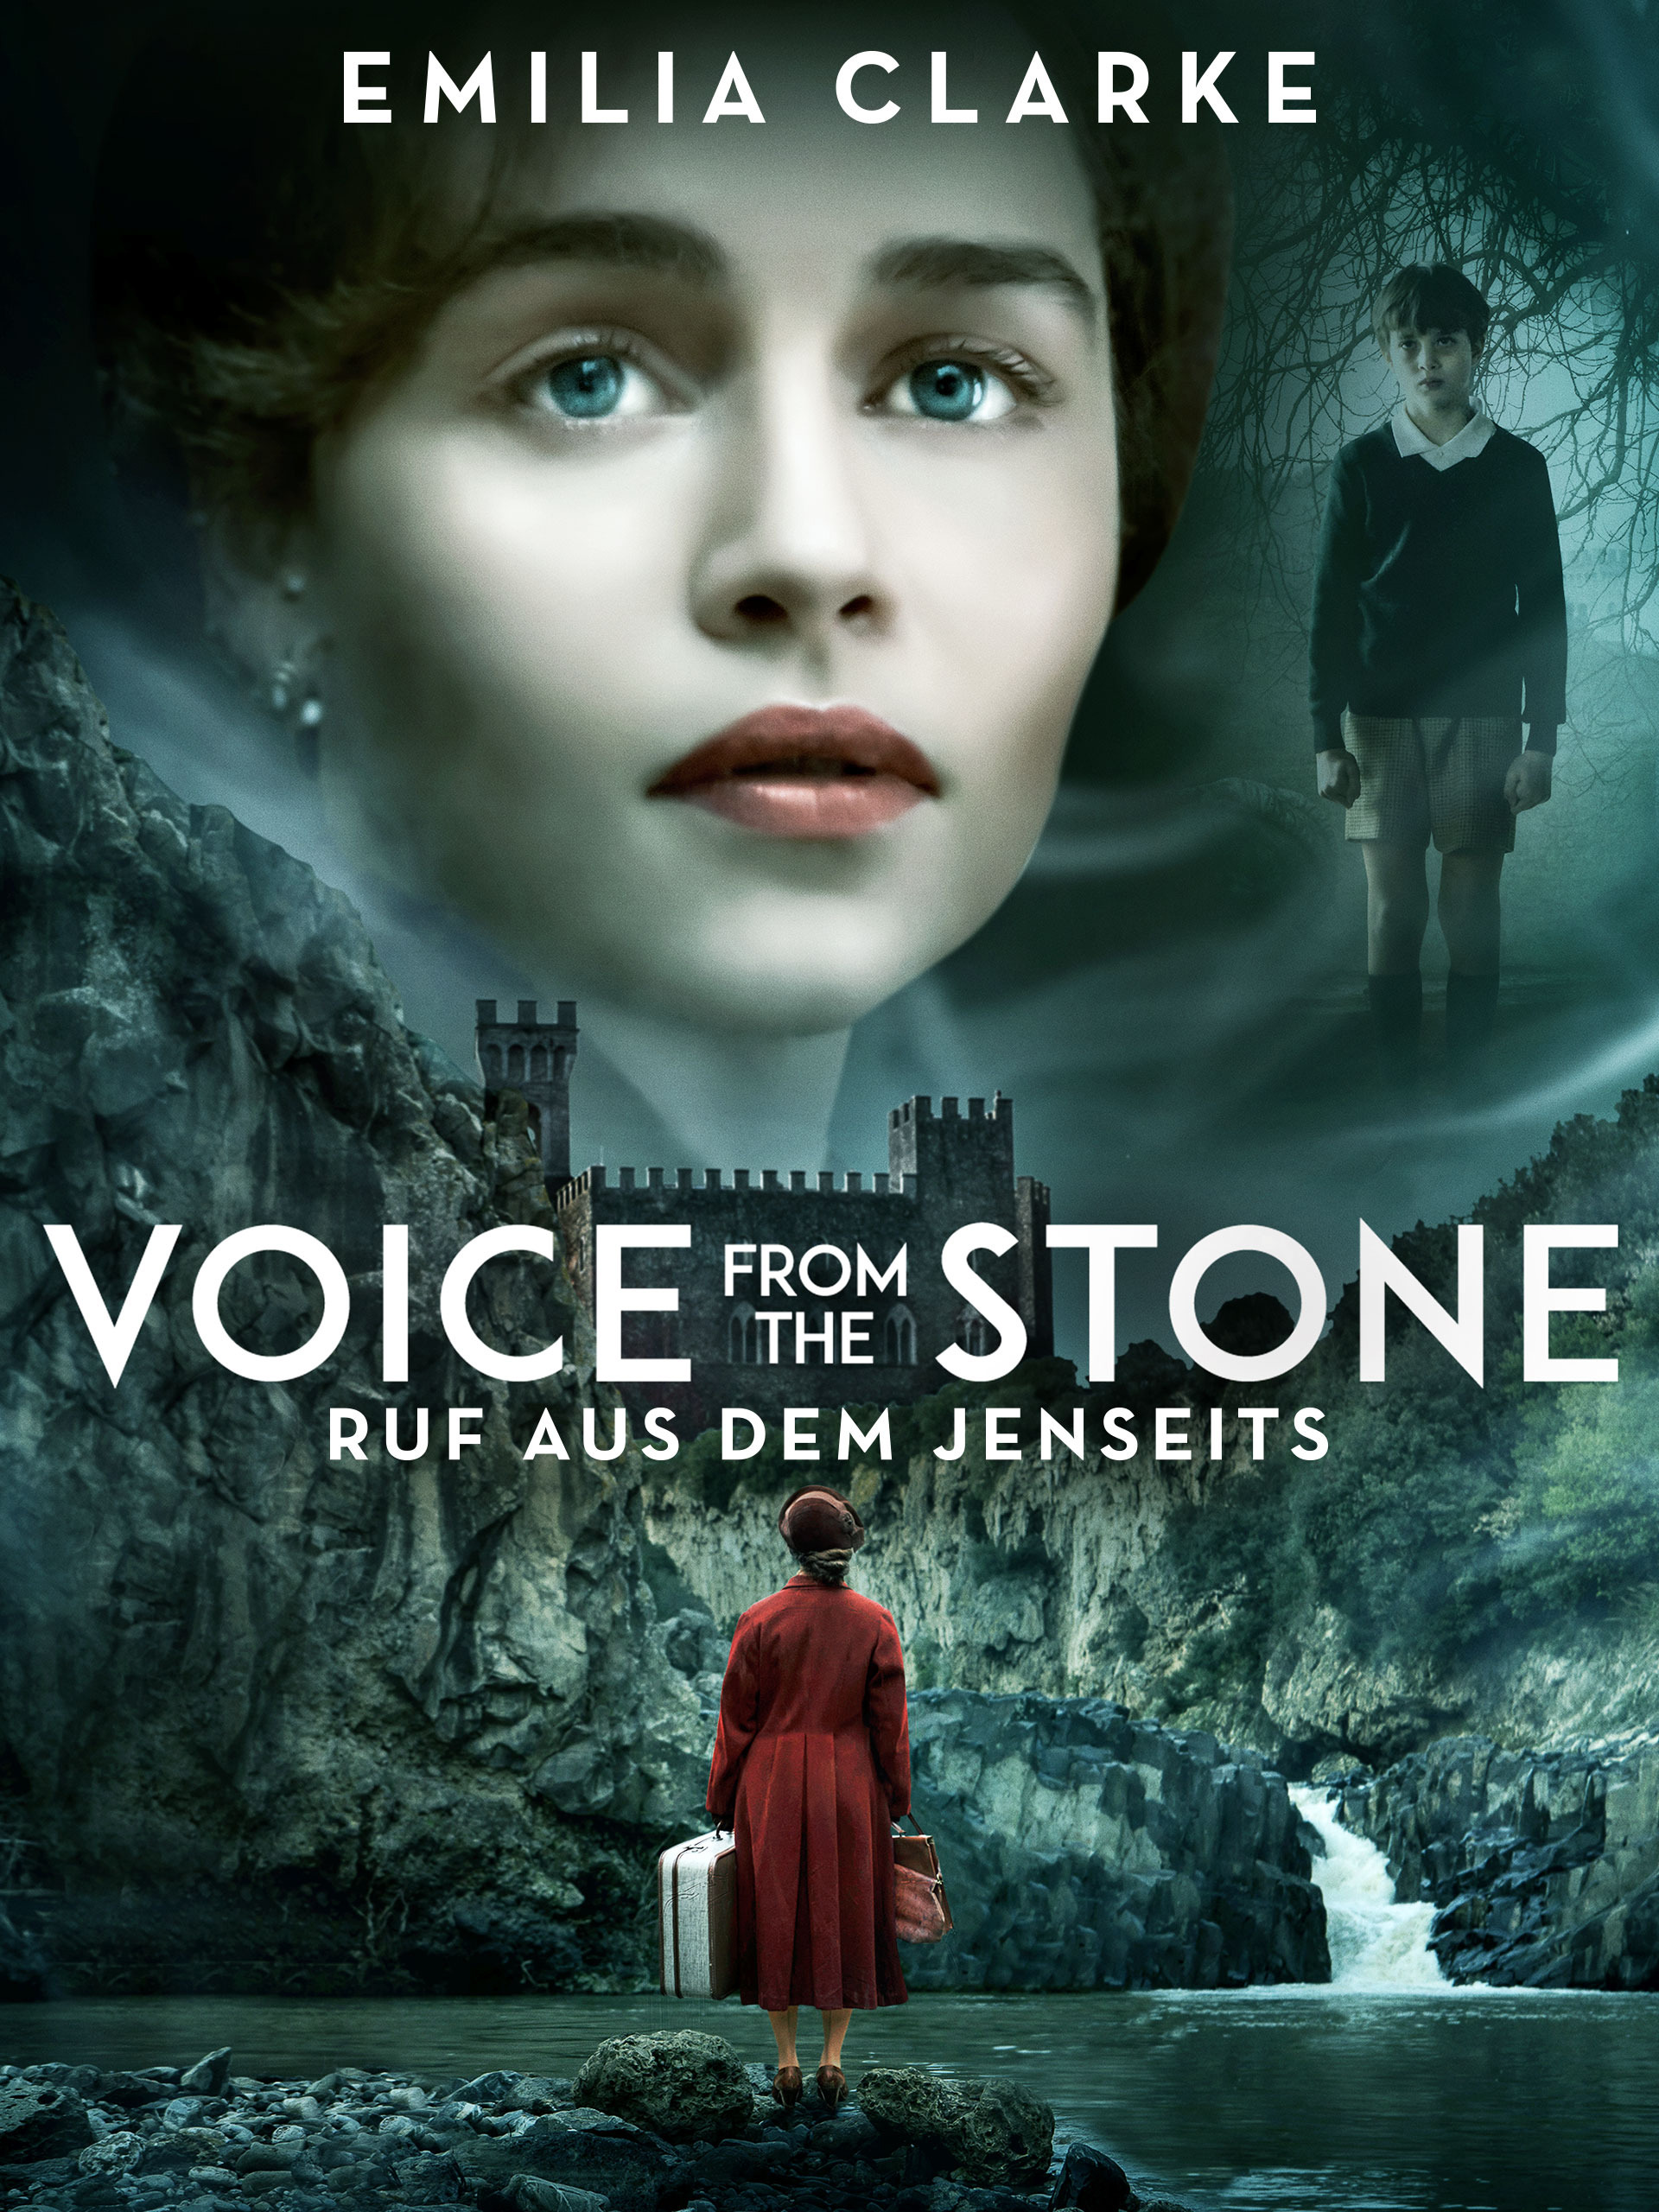 Voice from the Stone: Ruf aus dem Jenseits